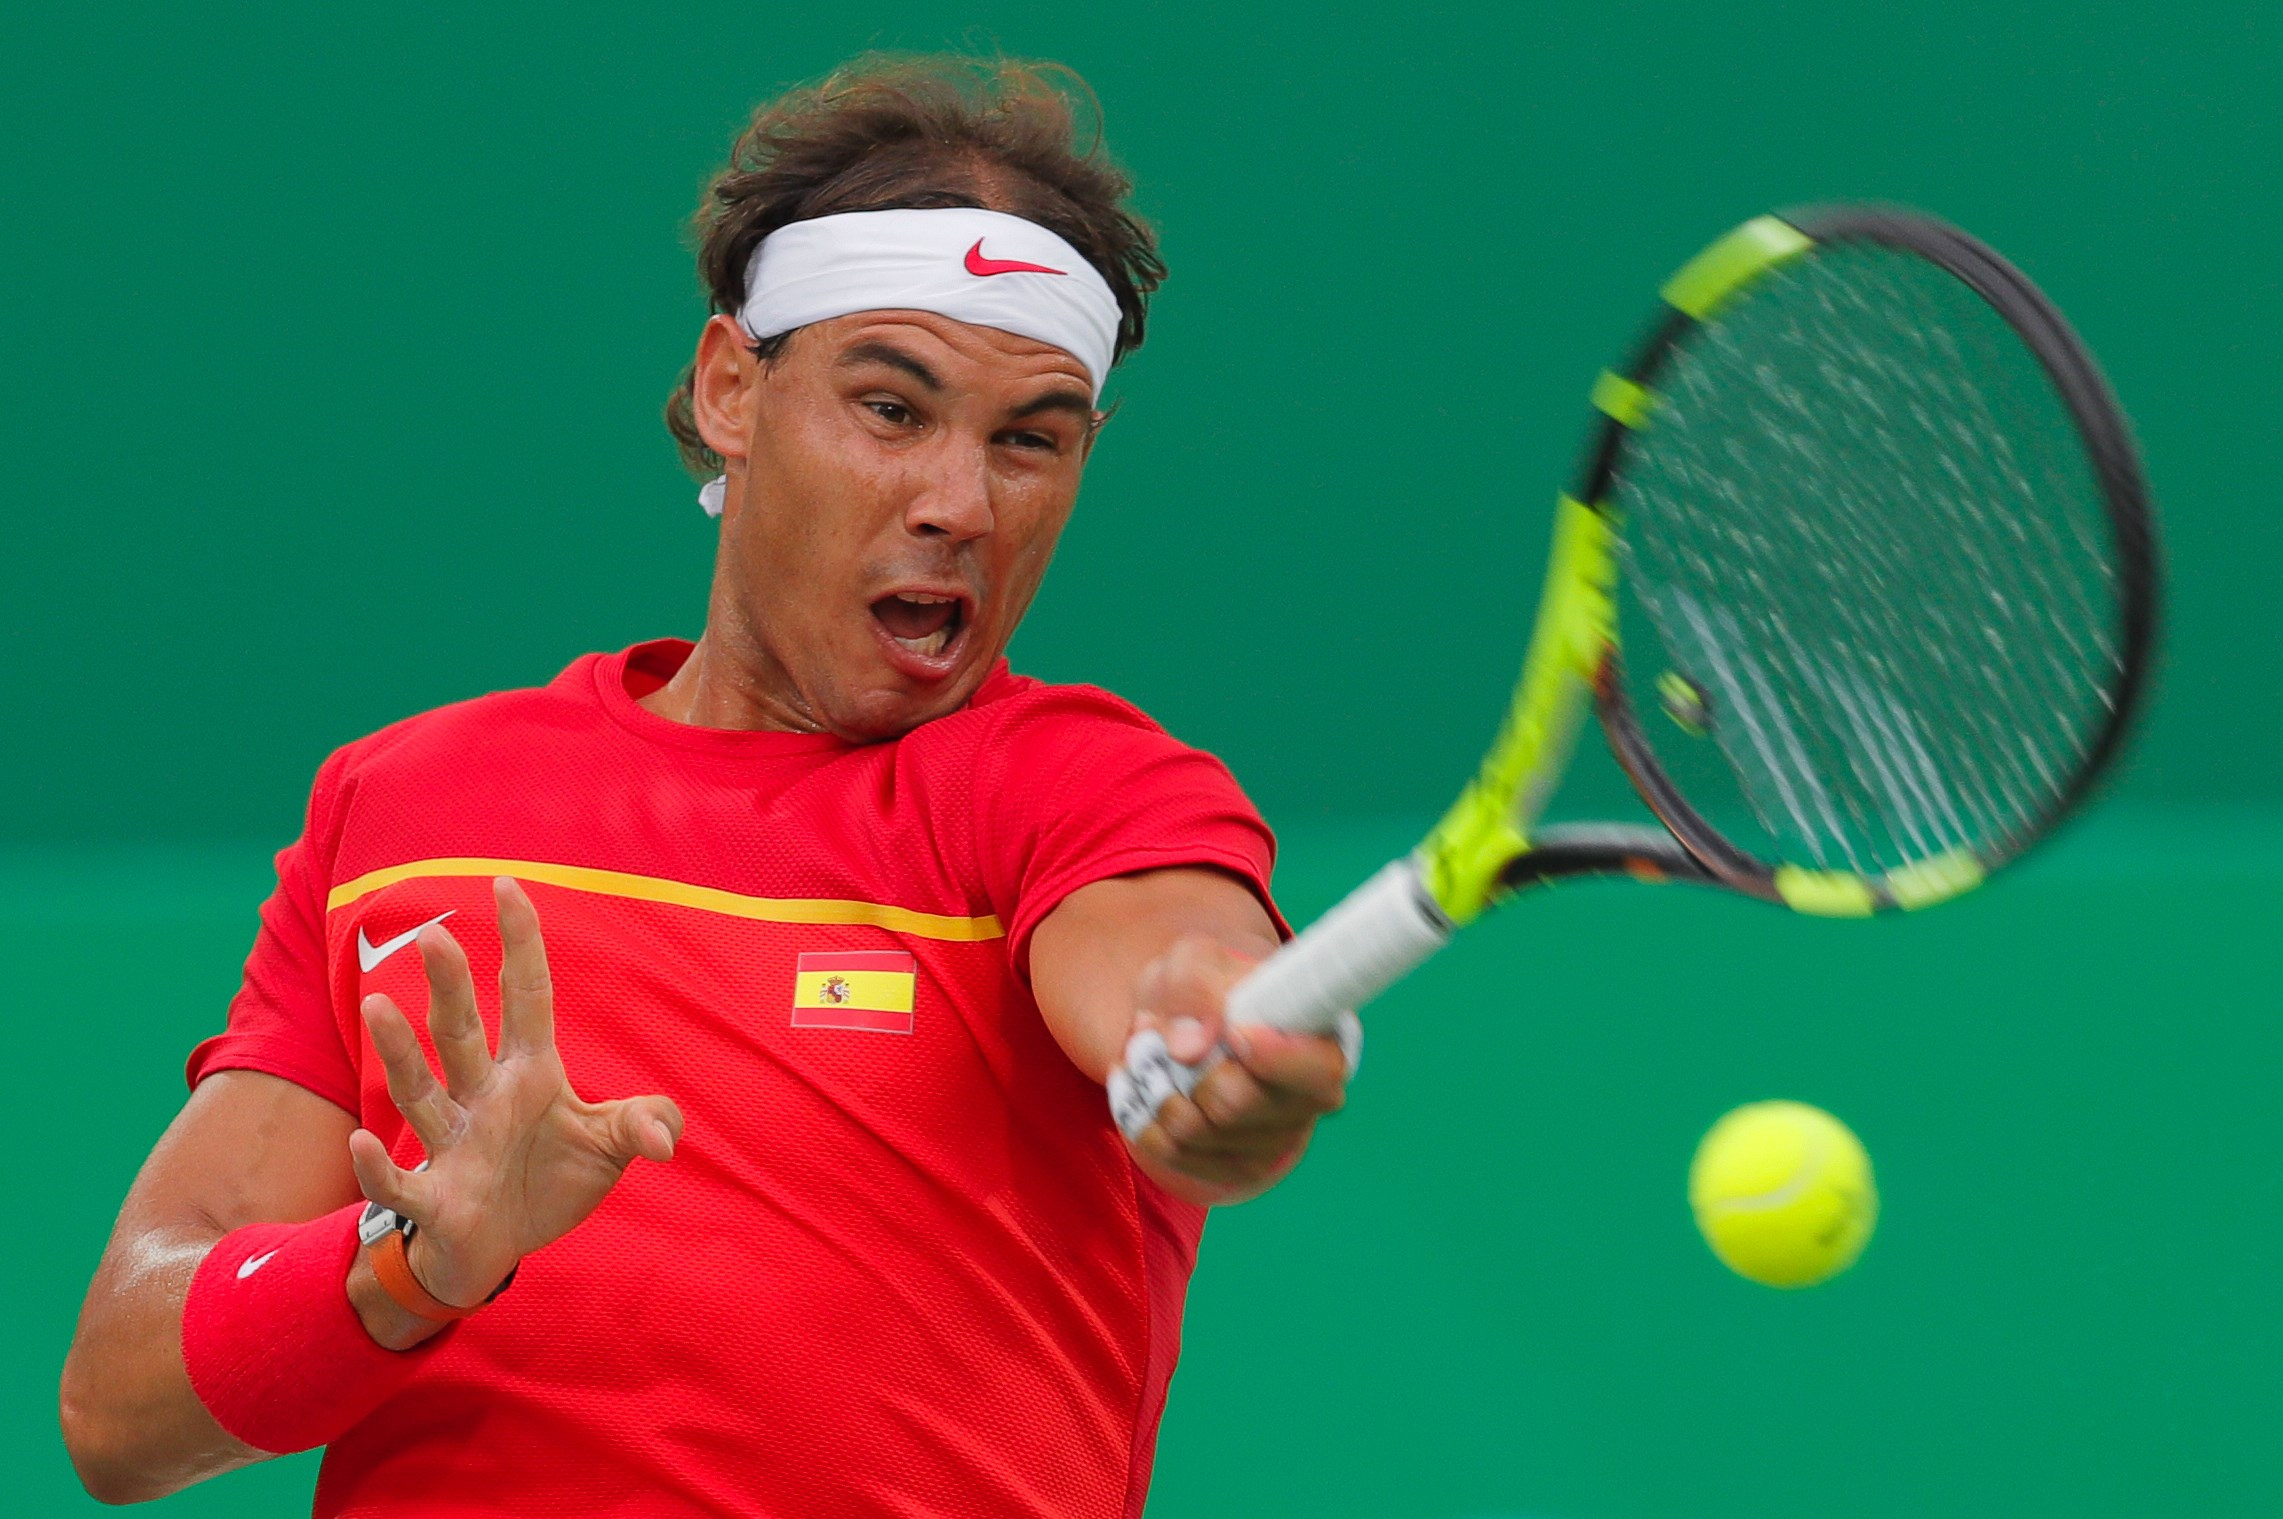 Rafael Nadal of Spain returns a ball to Federico Delbonis of Argentina during the men's tennis competition at the 2016 Summer Olympics in Rio de Janeiro, Brazil, Sunday, Aug. 7, 2016. (AP Photo/Vadim Ghirda)